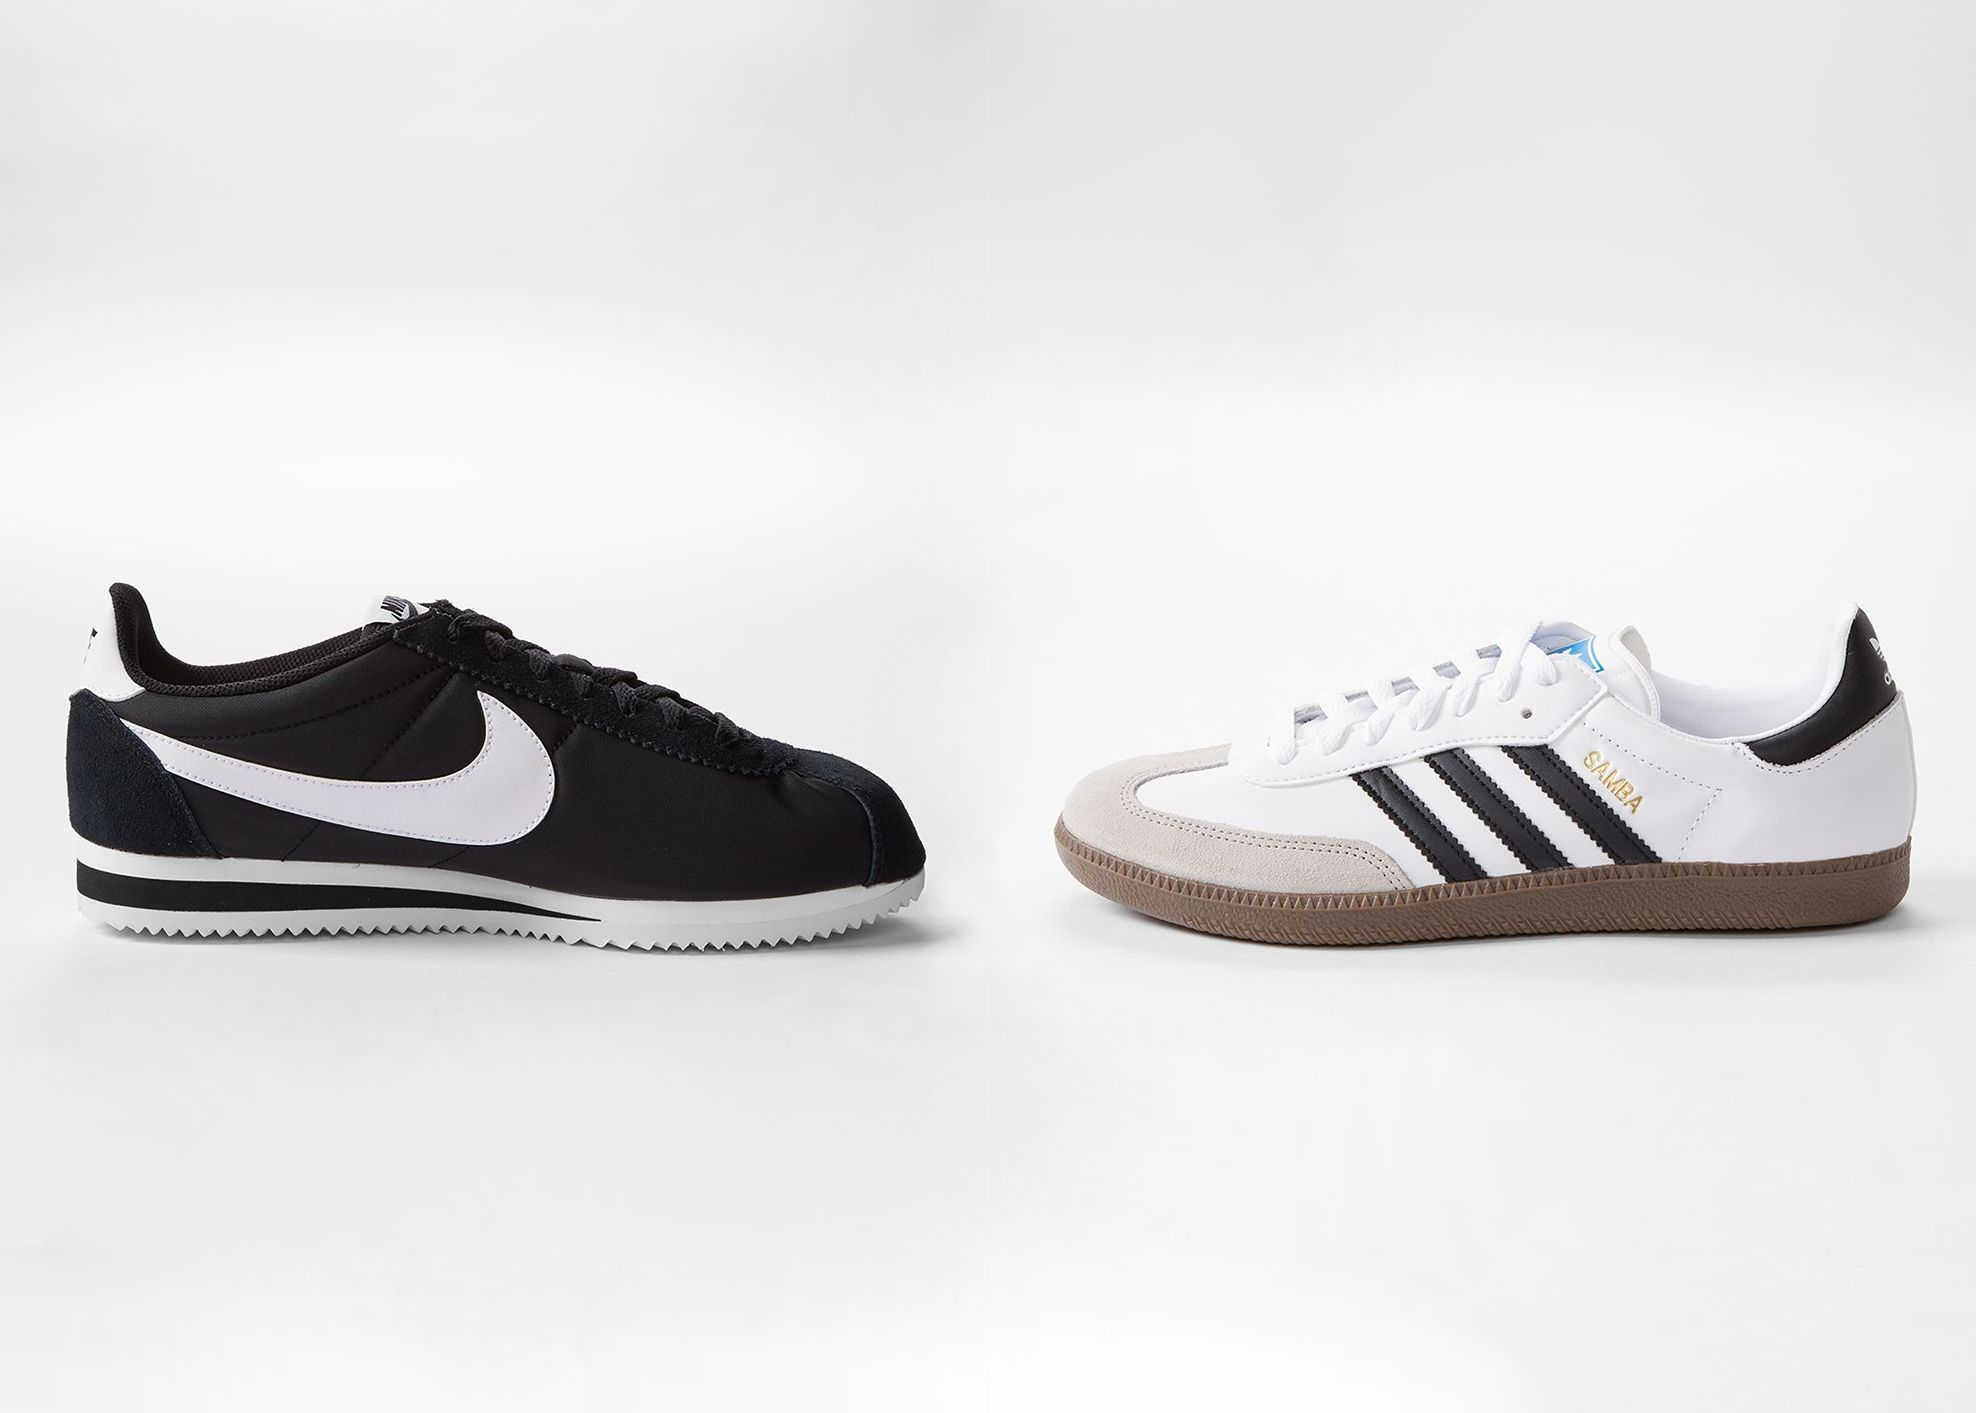 Der ultimative Sneaker-Battle: ADIDAS Samba vs. NIKE Cortez